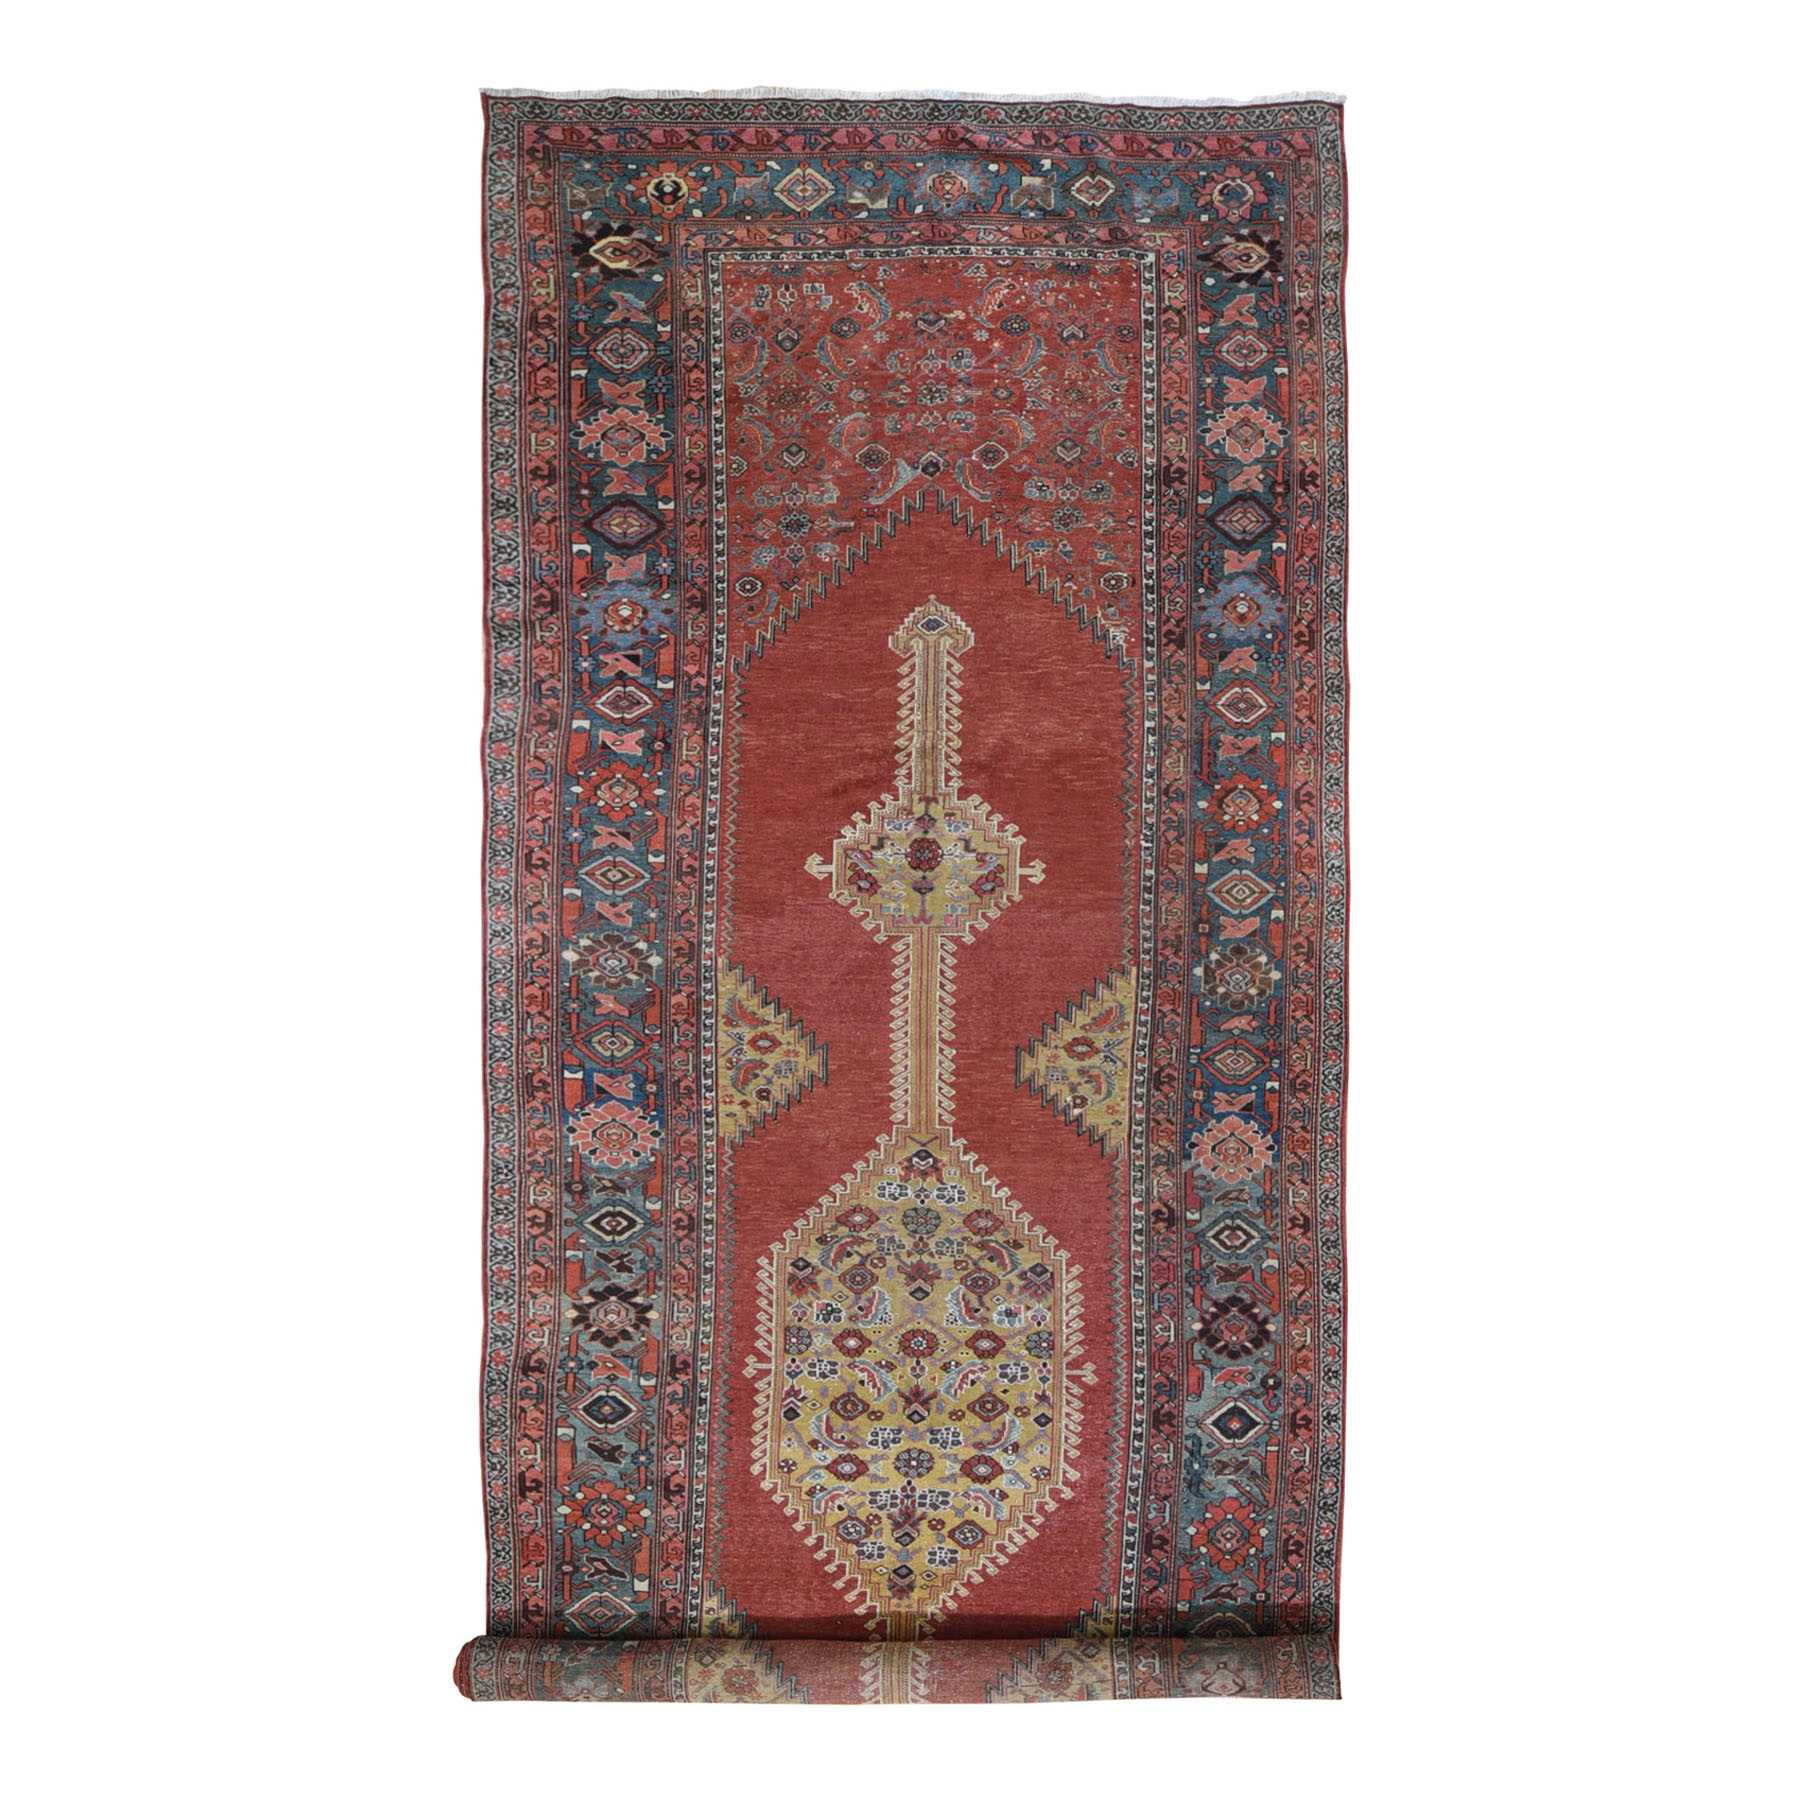 "6'8""x19'2"" Gallery Size Antique North West Persian Exc Condition, Clean Hand Woven Oriental Rug"